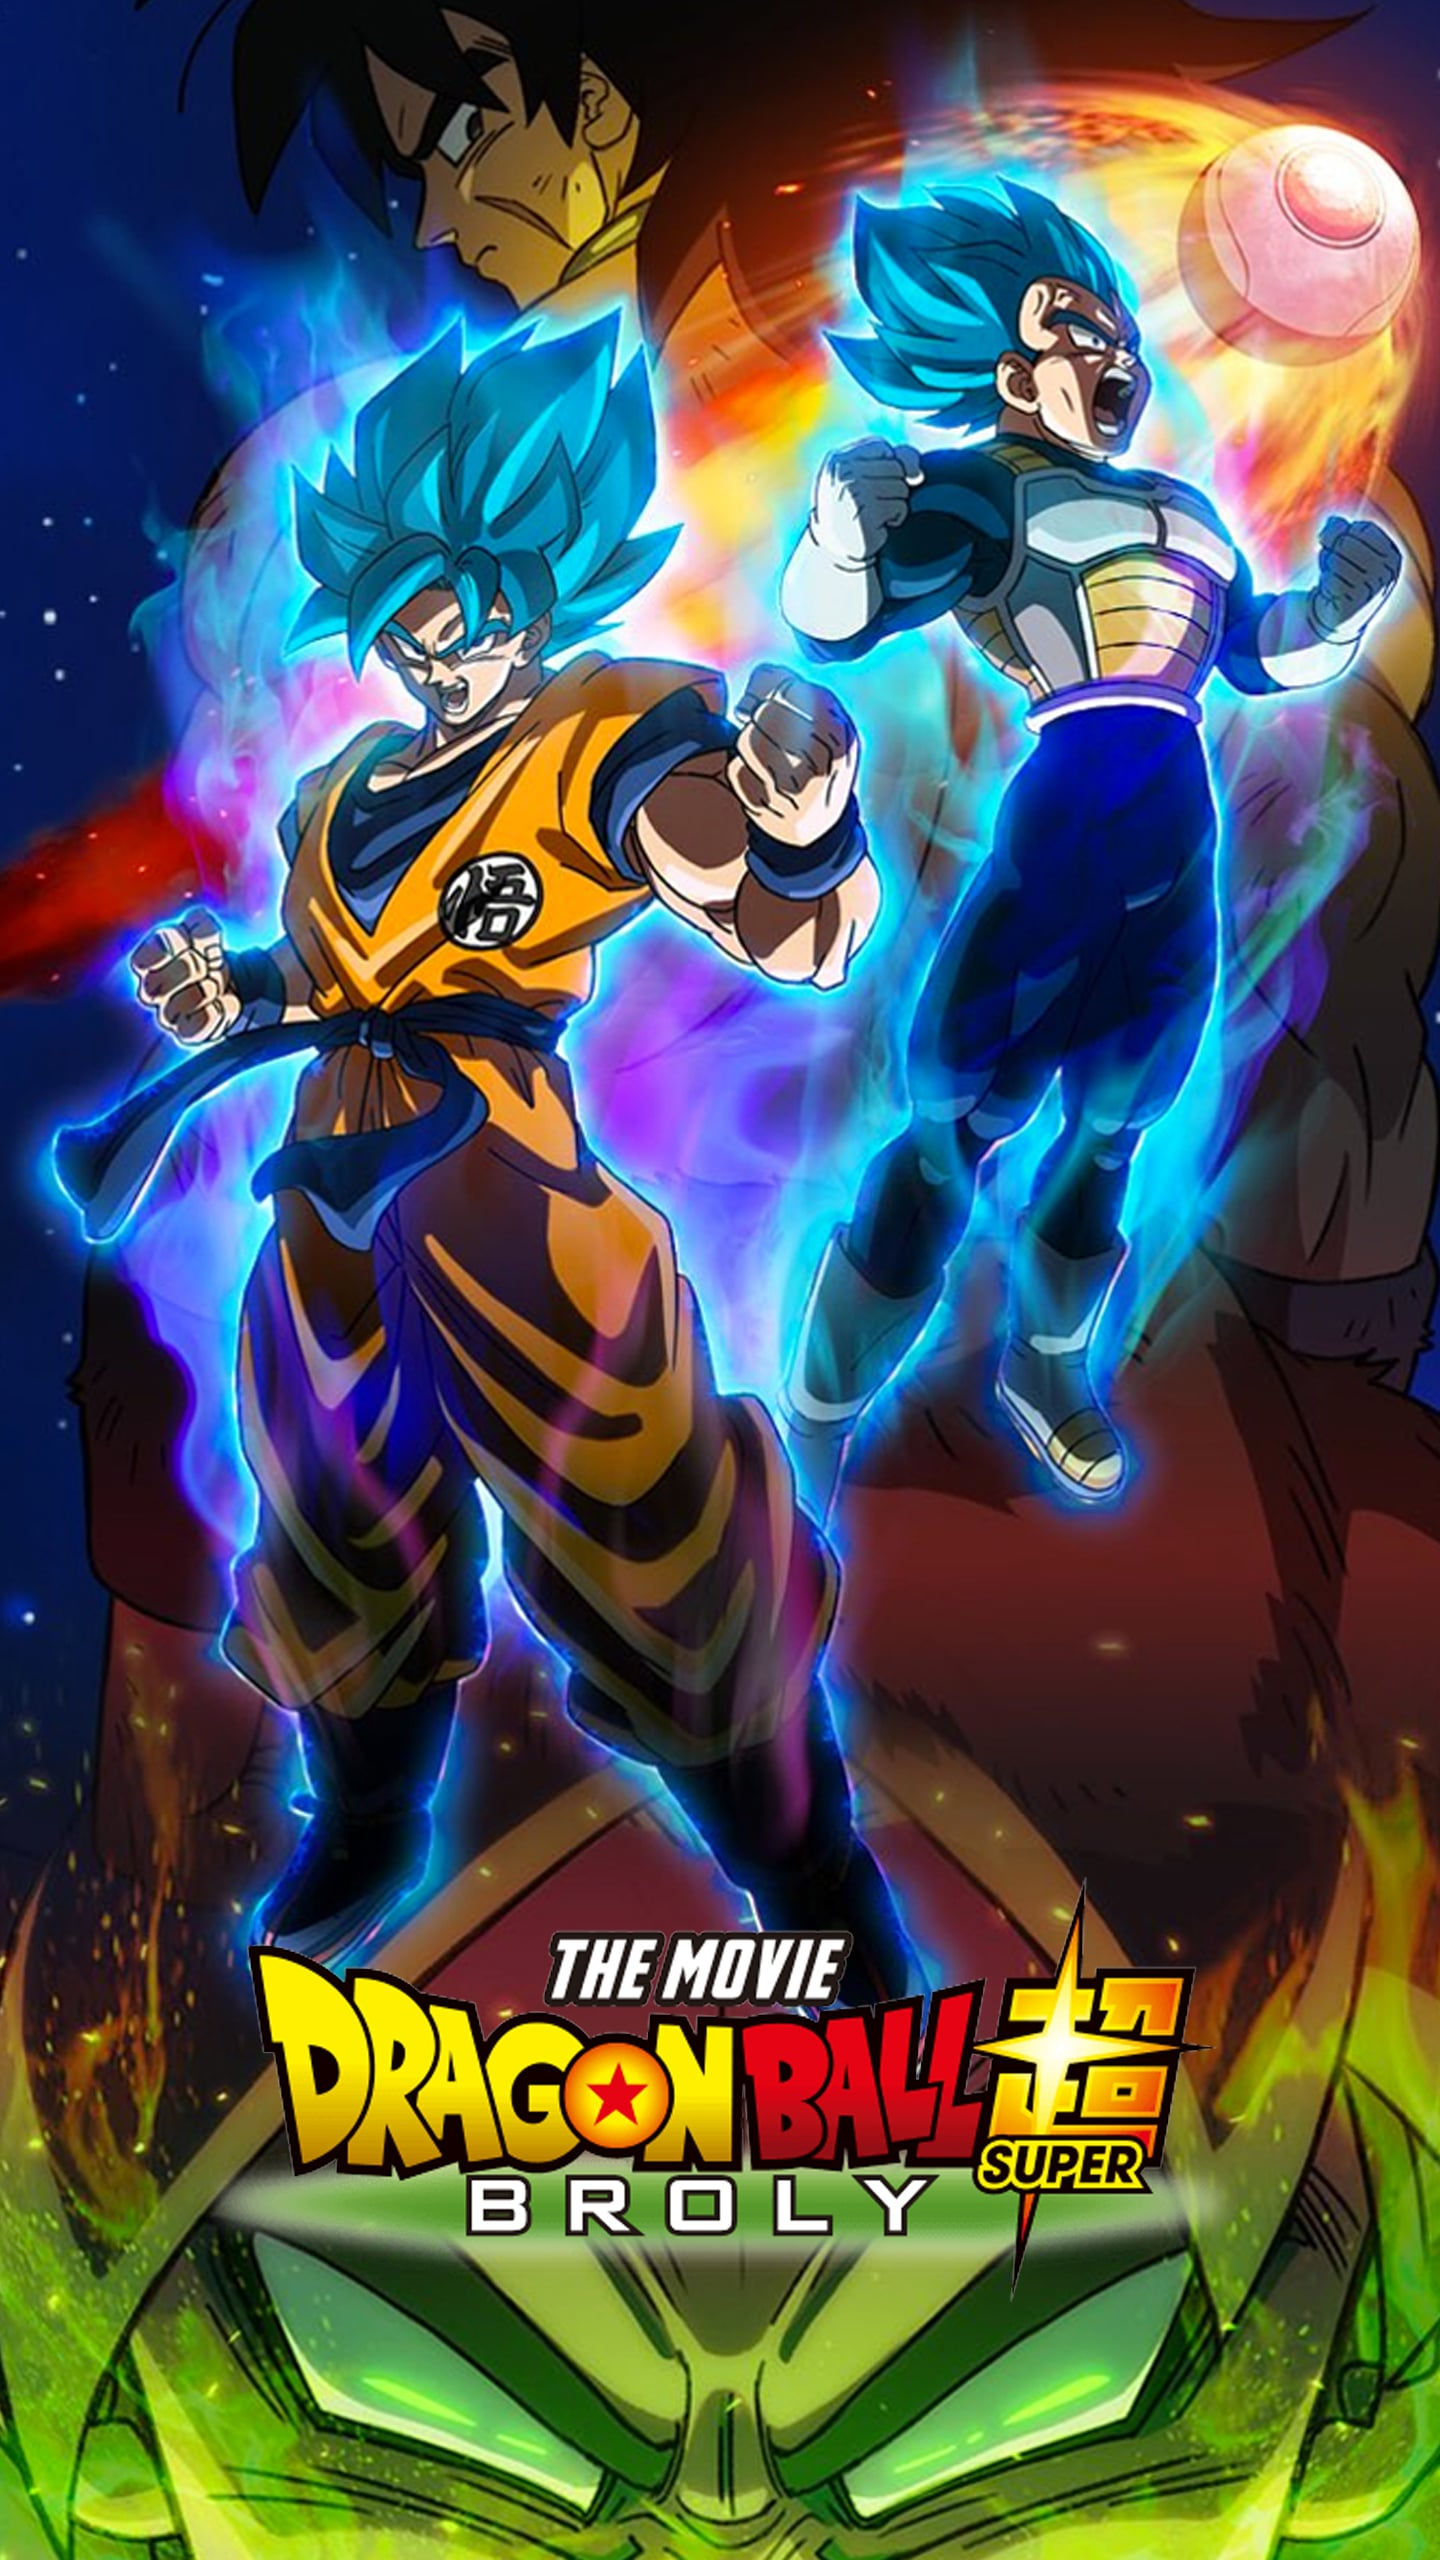 Dragon Ball Super Broly Wallpapers Kolpaper Awesome Free Hd Wallpapers